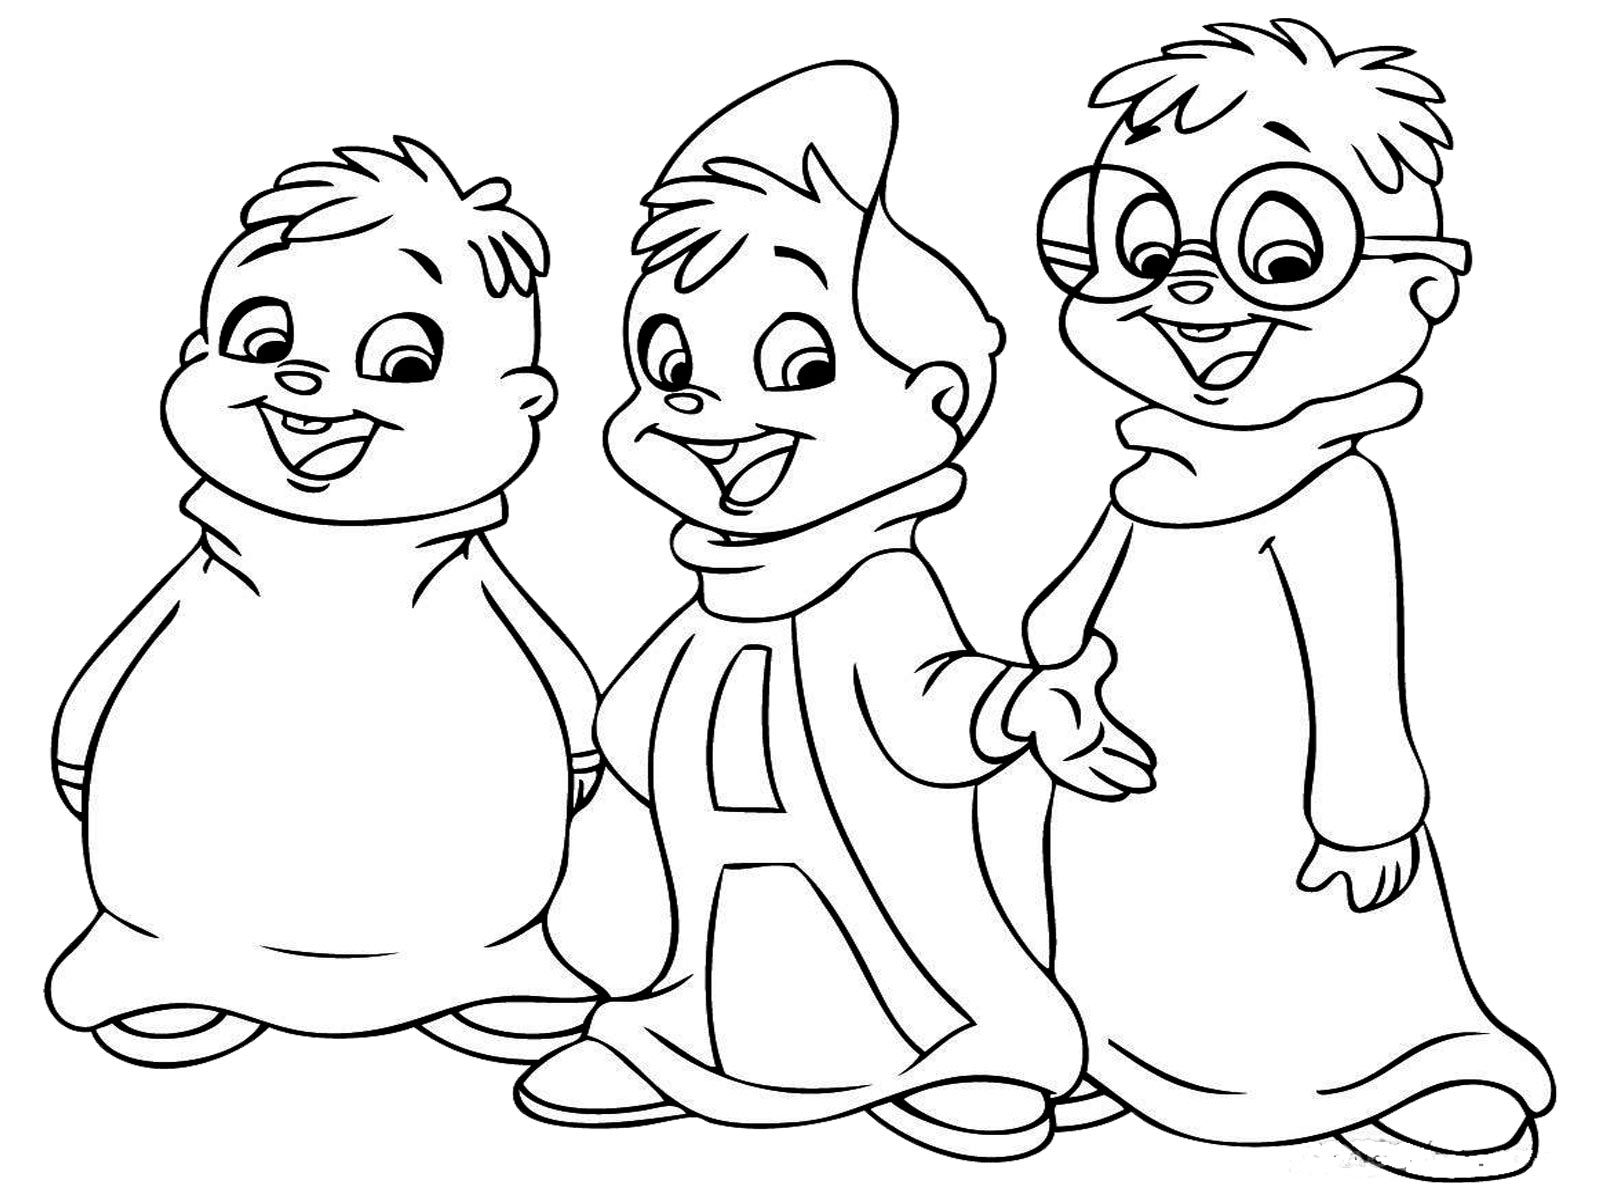 Free coloring pages nickelodeon characters